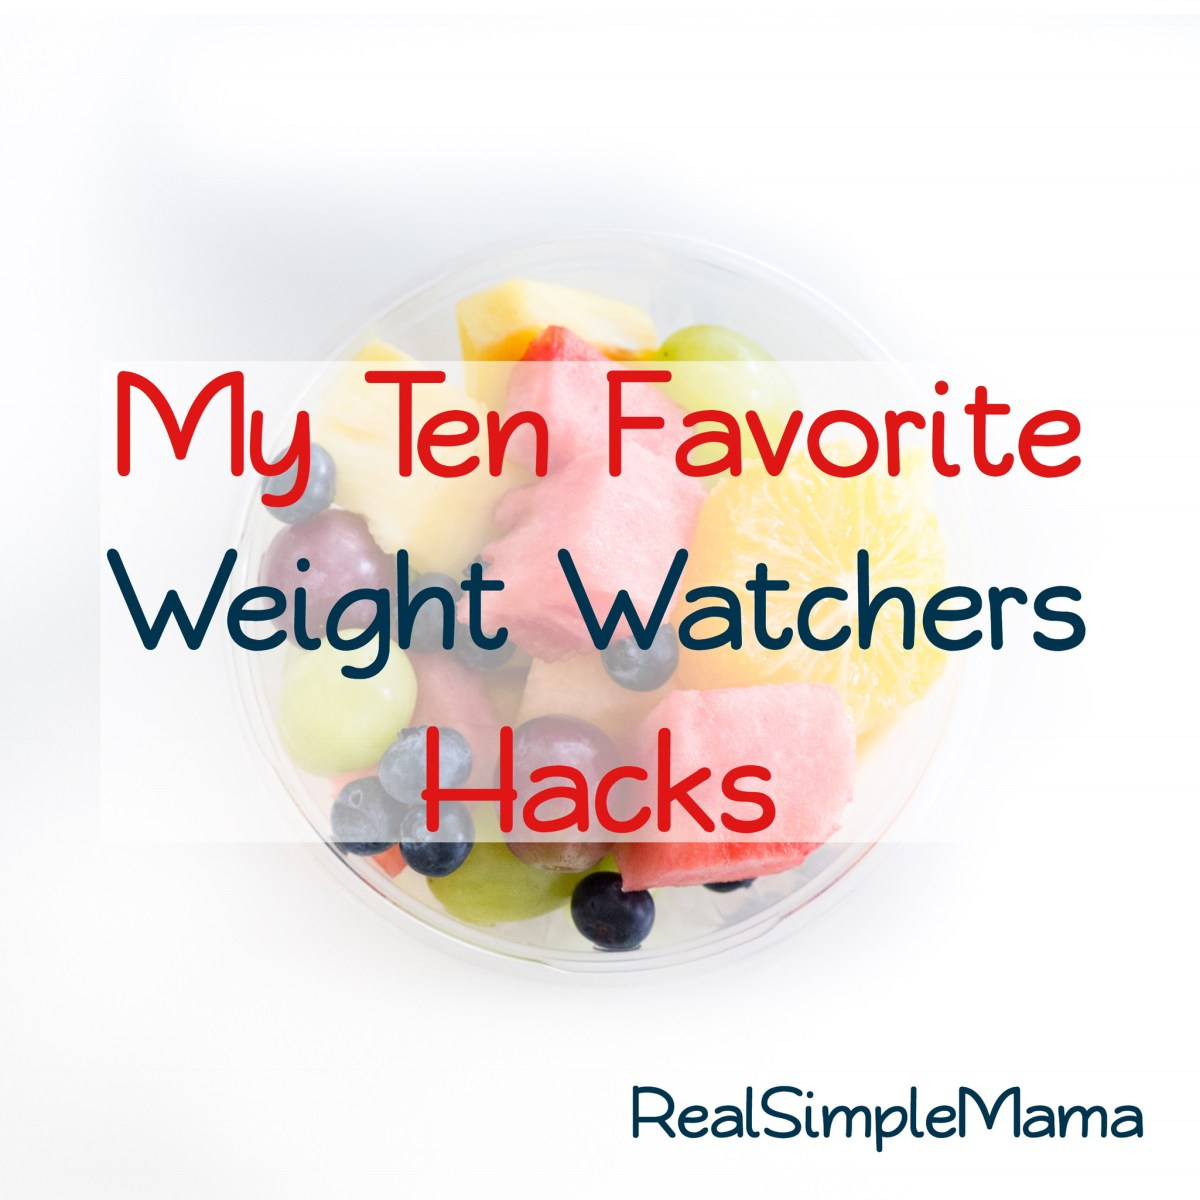 My Ten Favorite Weight Watchers Hacks